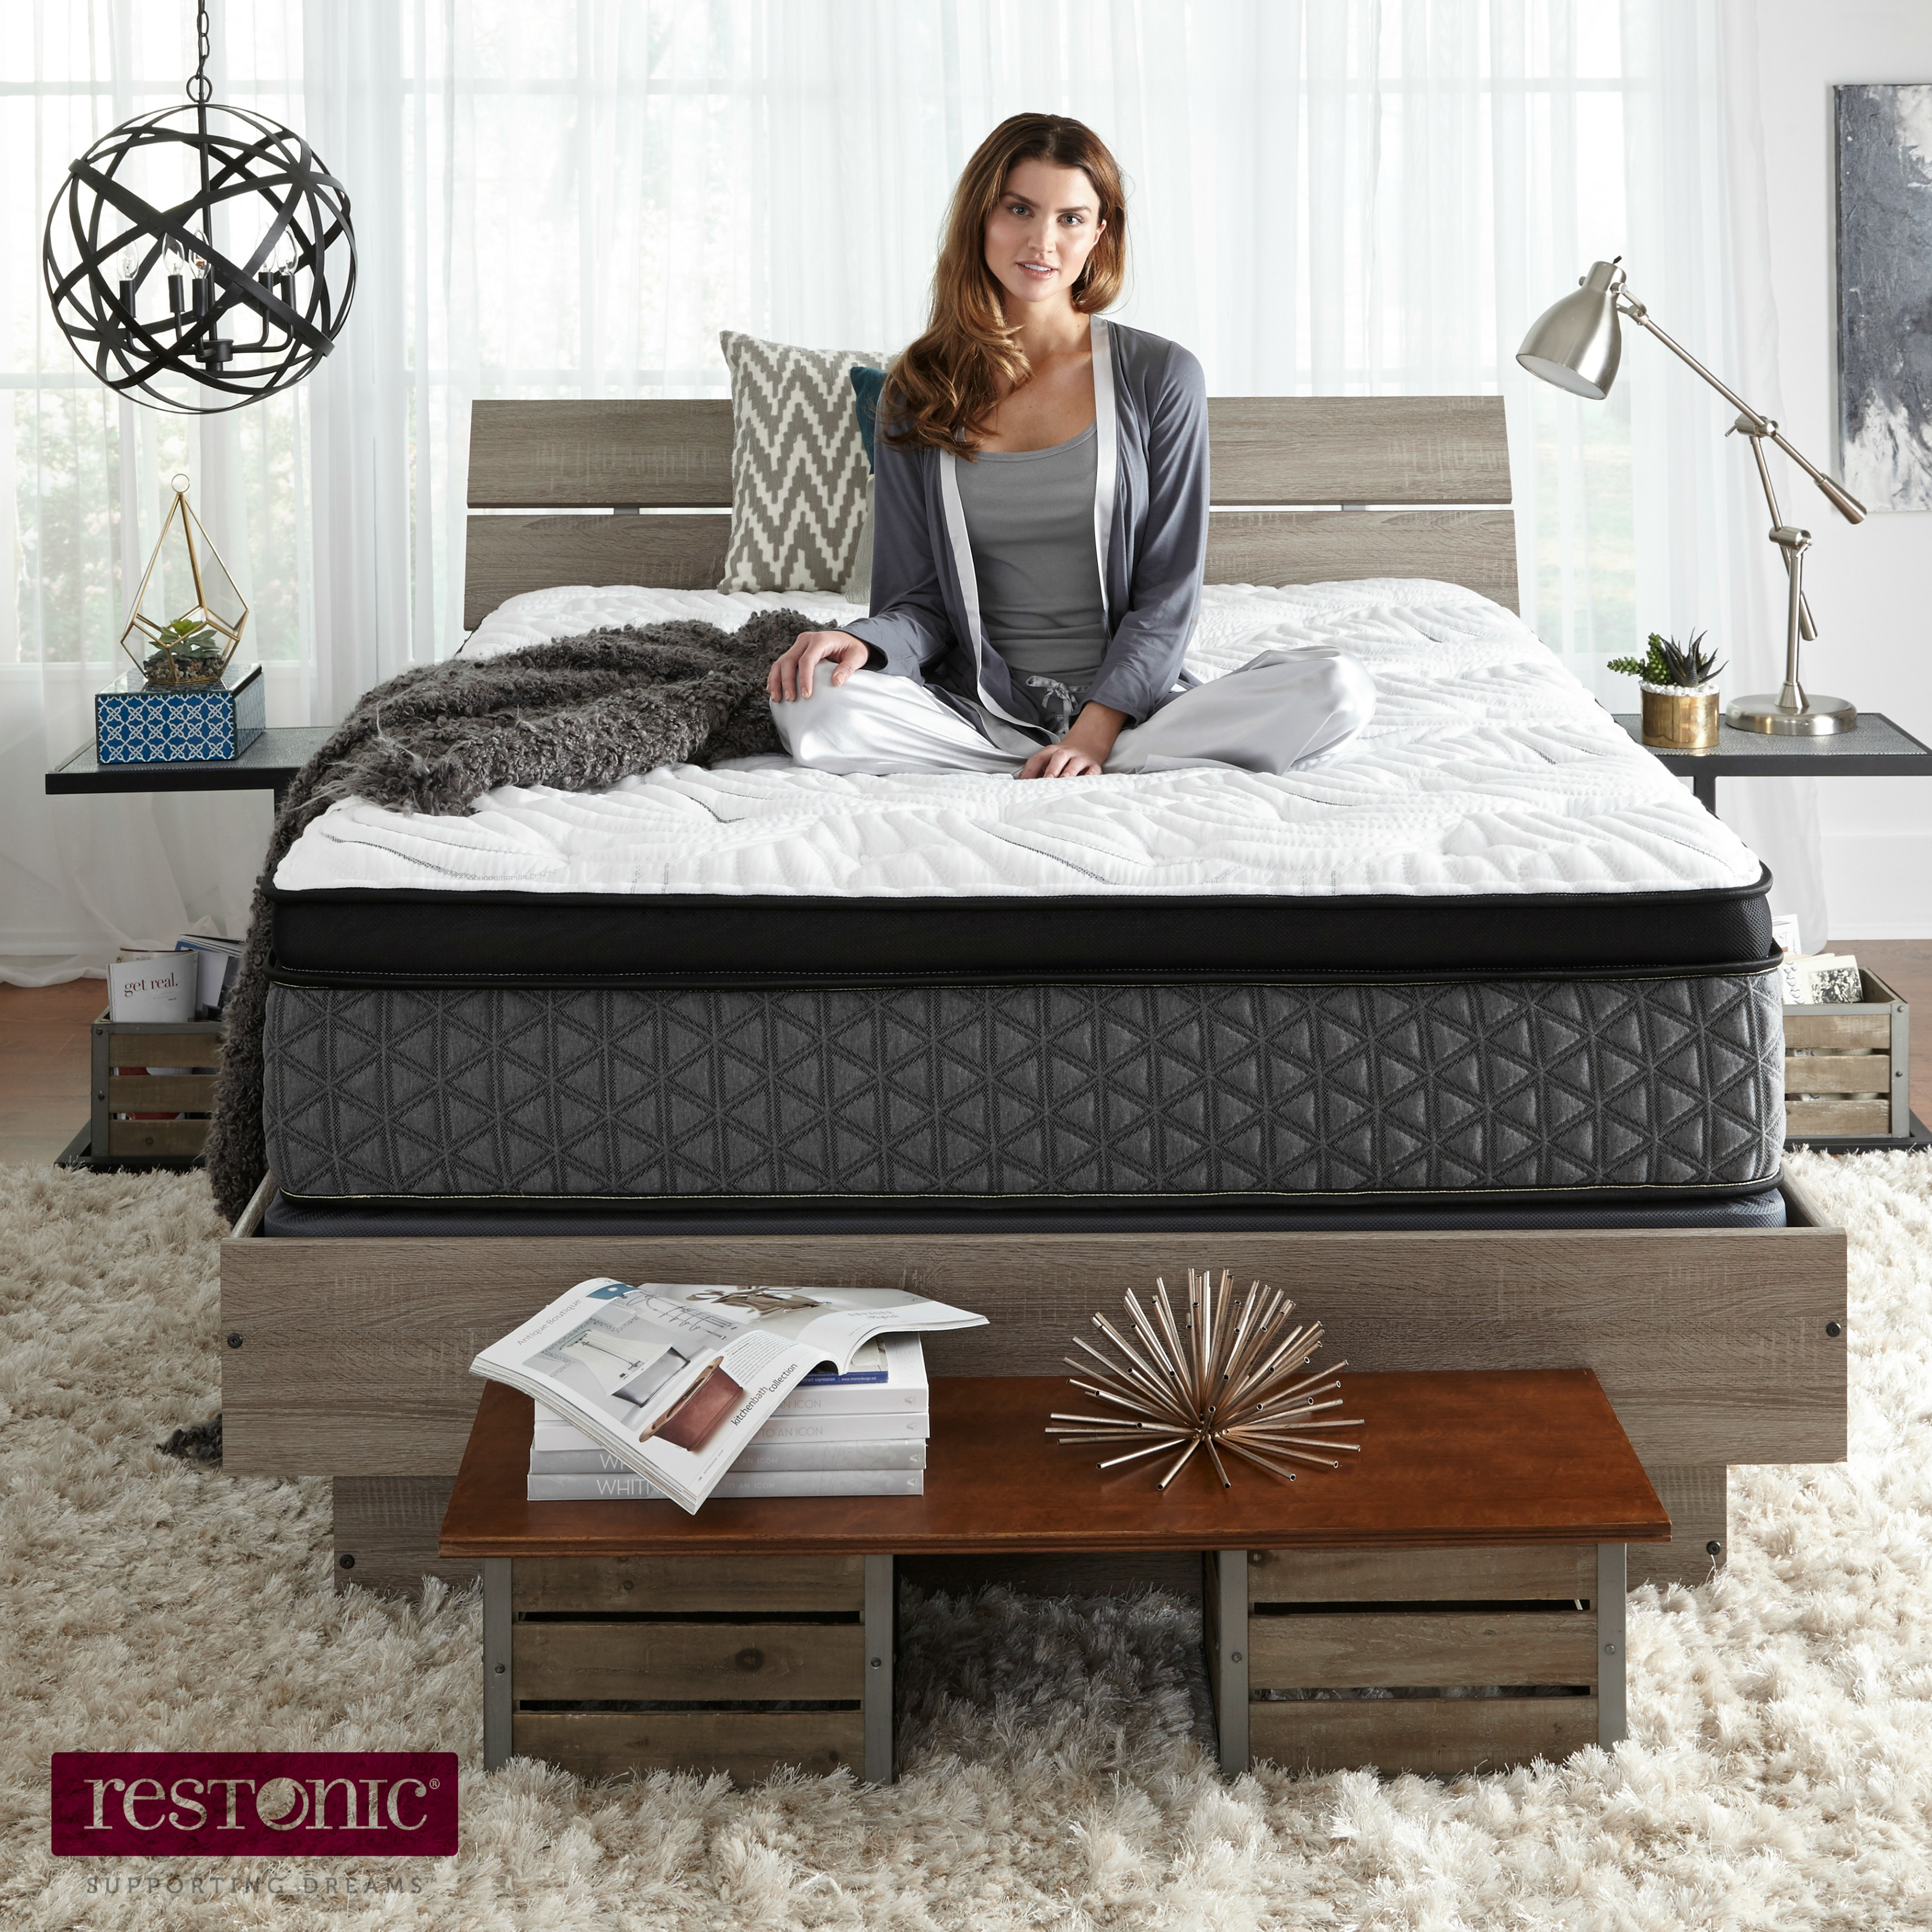 stunning can everyone so and of number bedroom lovely value gallery sets know reviews benchmark wallpaper mattress new image sleep restonic concept for